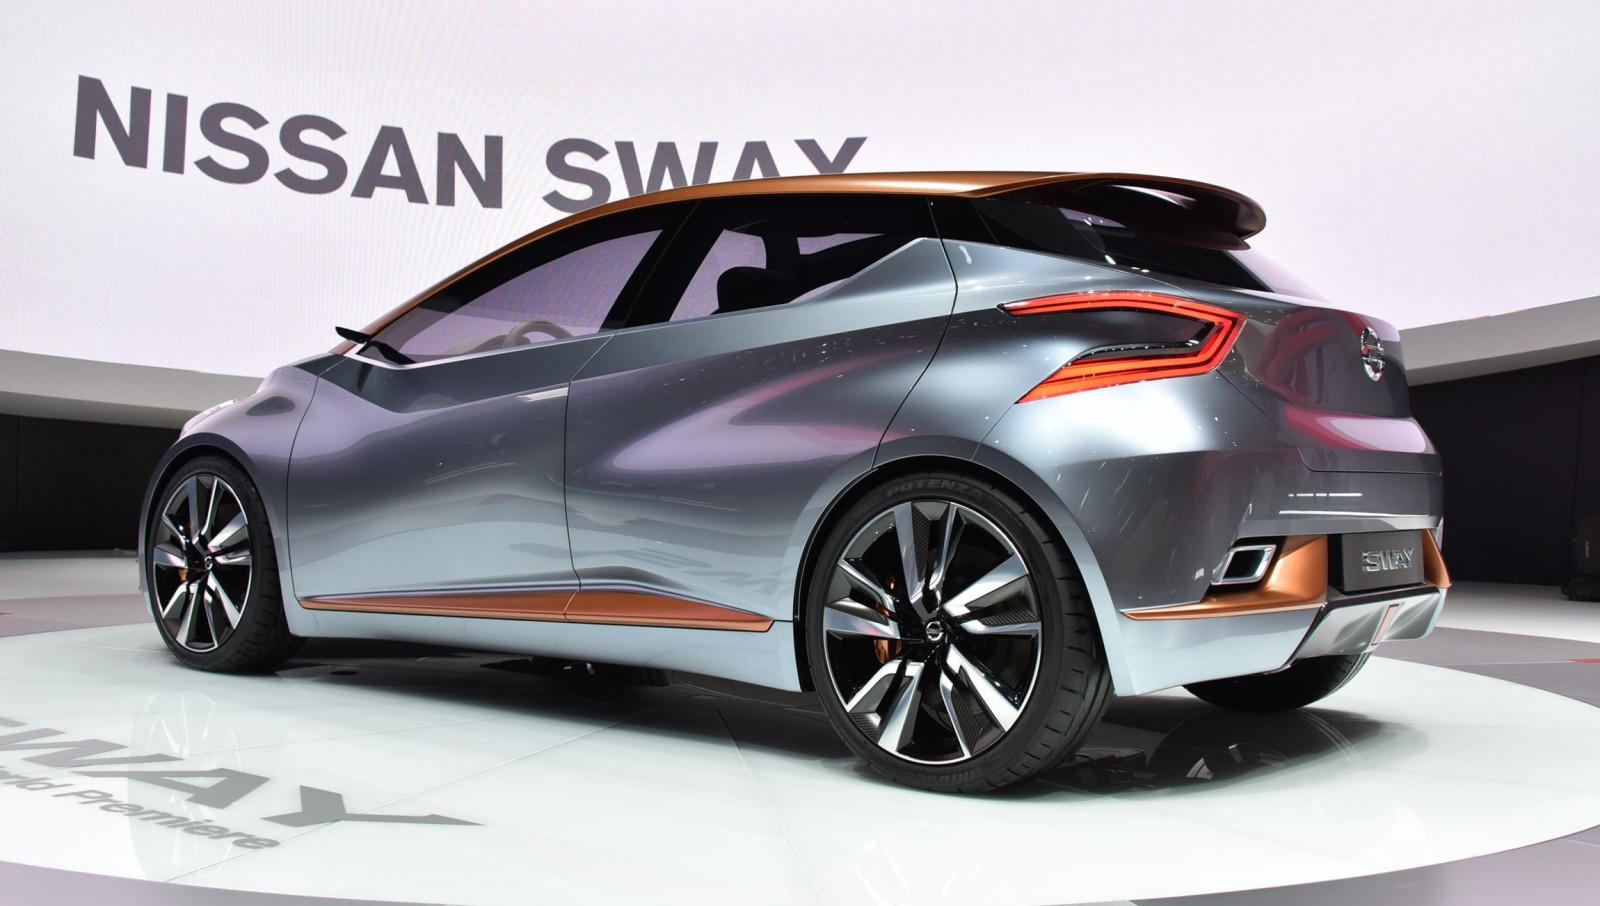 2015 Nissan SWAY Concept 32